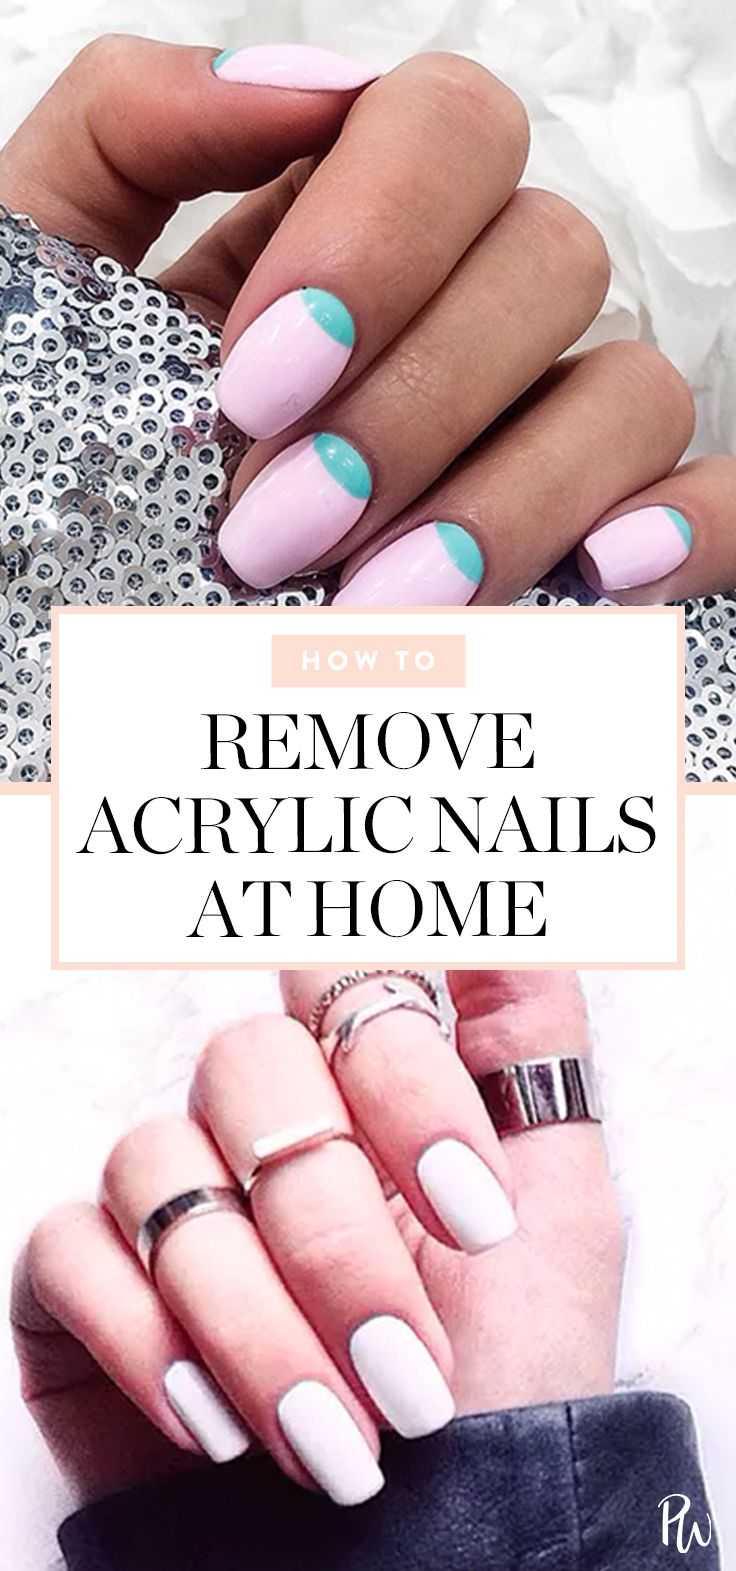 How to Remove Acrylic Nails at Home #blinkbeauty #removeacrylicnails #acrylicnails #nailtips